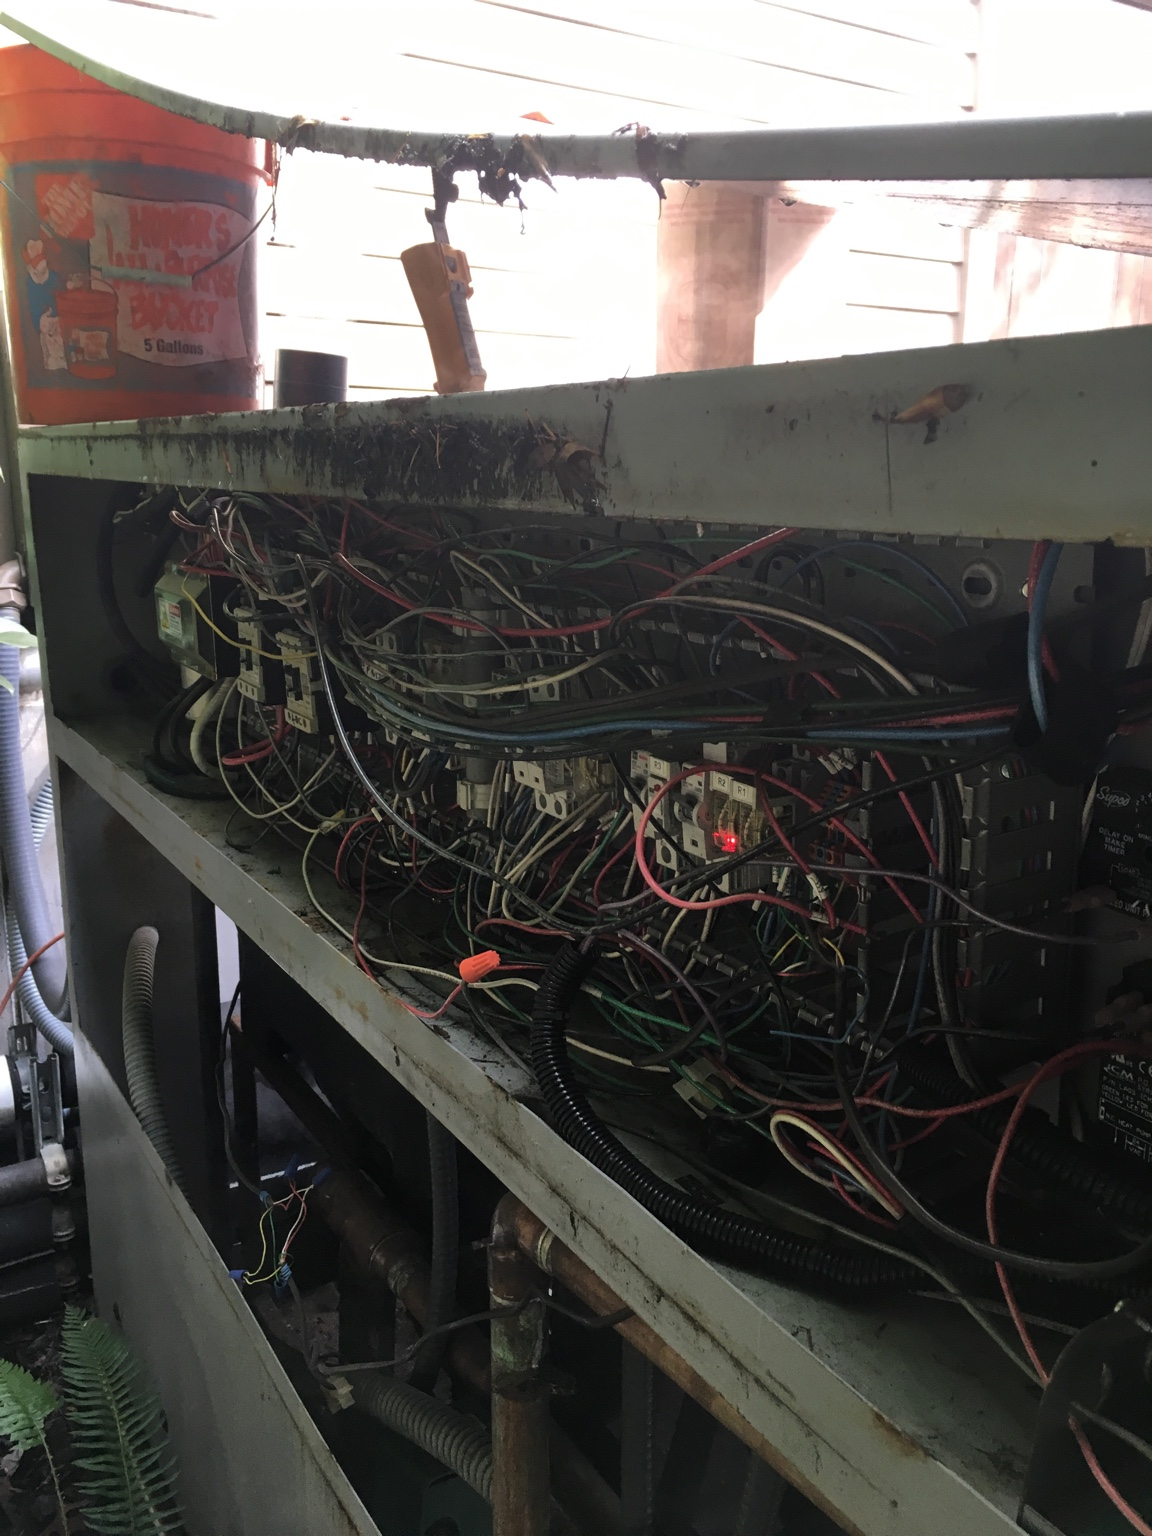 Meet My Nemesis Munchkin Boiler Wiring Diagram No Problem Well Look It Up On The Internet Wait There Is Web Site Or Anything Google